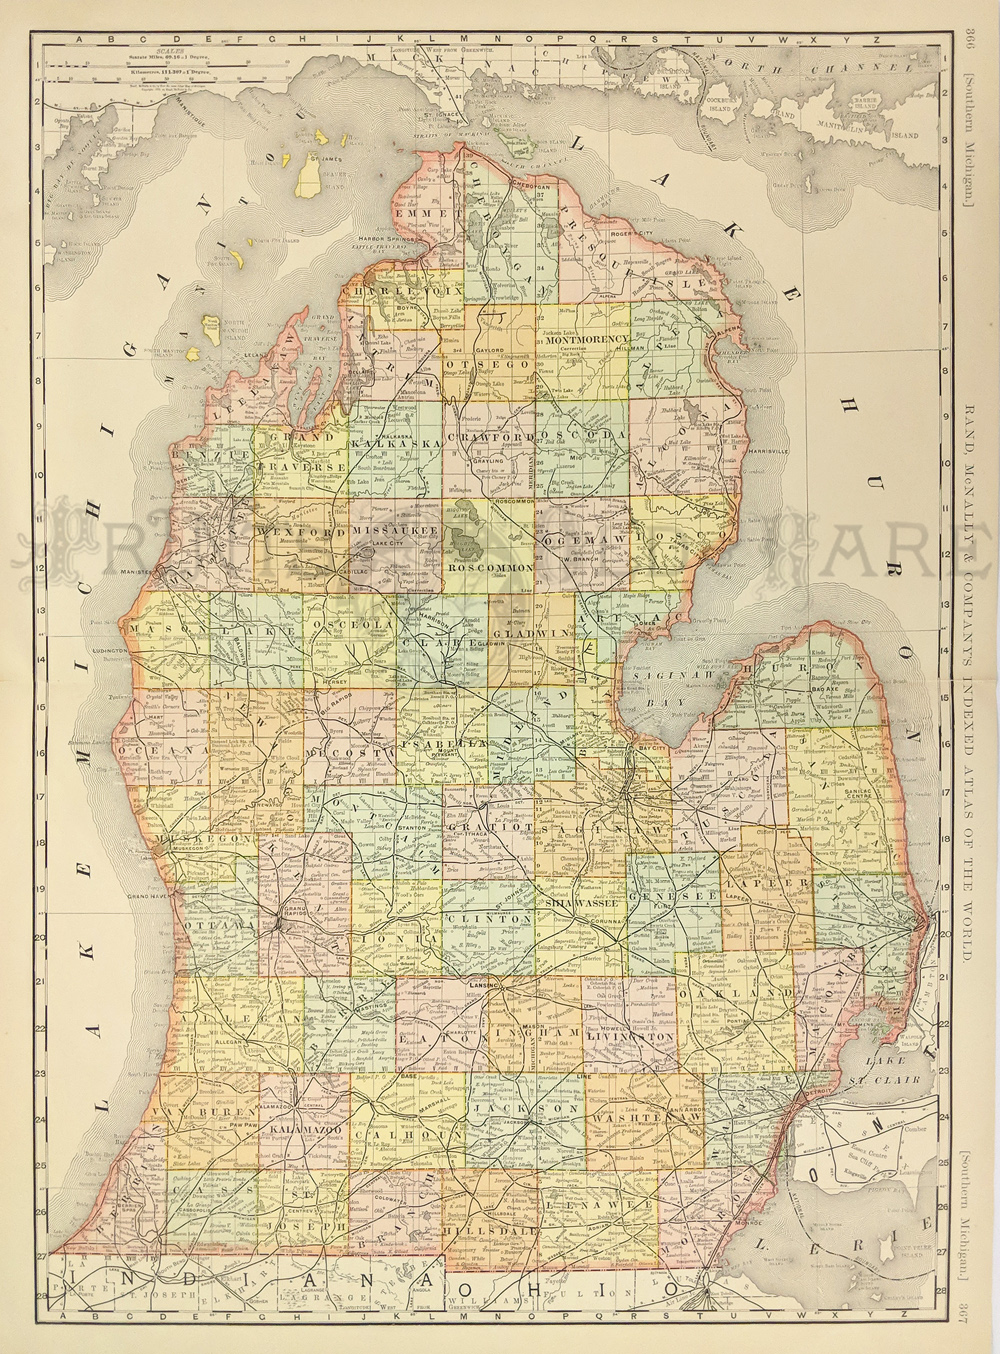 Prints old rare michigan antique maps prints color rand mcnally companys indexed atlas of the worlds map of michigan surrounded by lake superior 27 12 x 20 12 in publicscrutiny Image collections